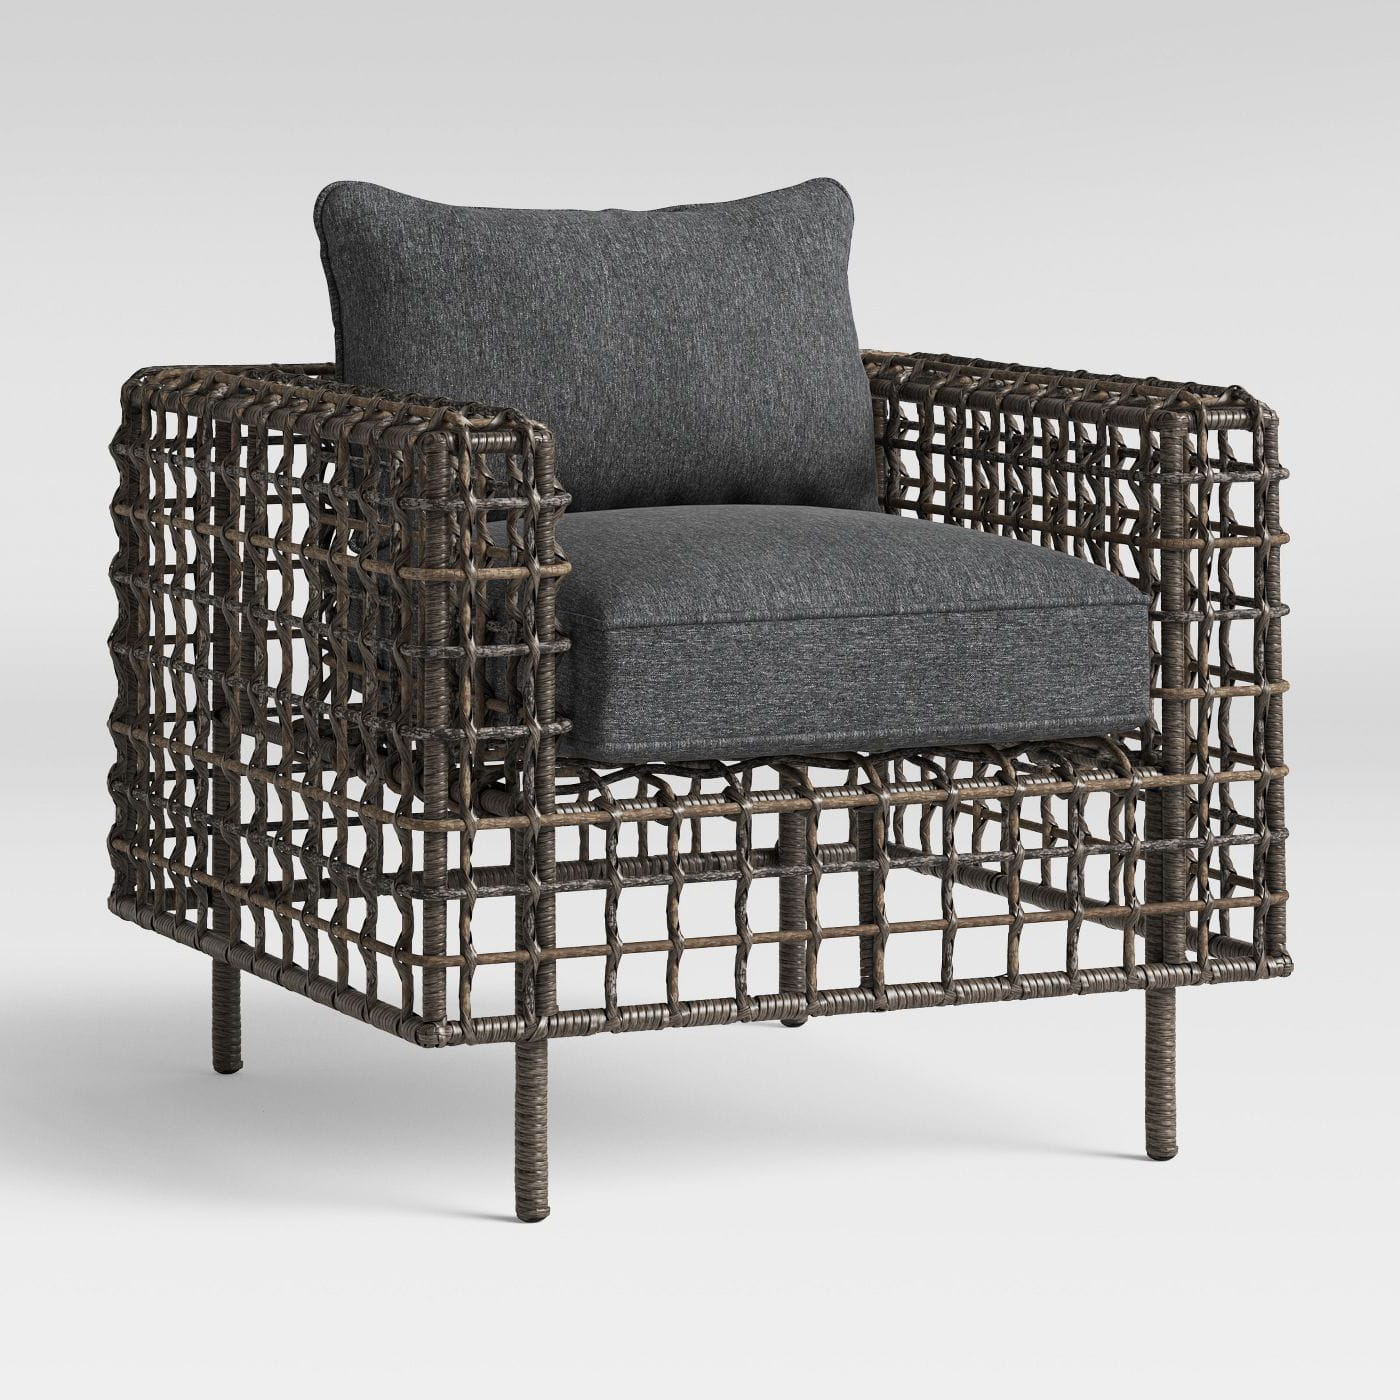 Wicker Club Outdoor patio chair